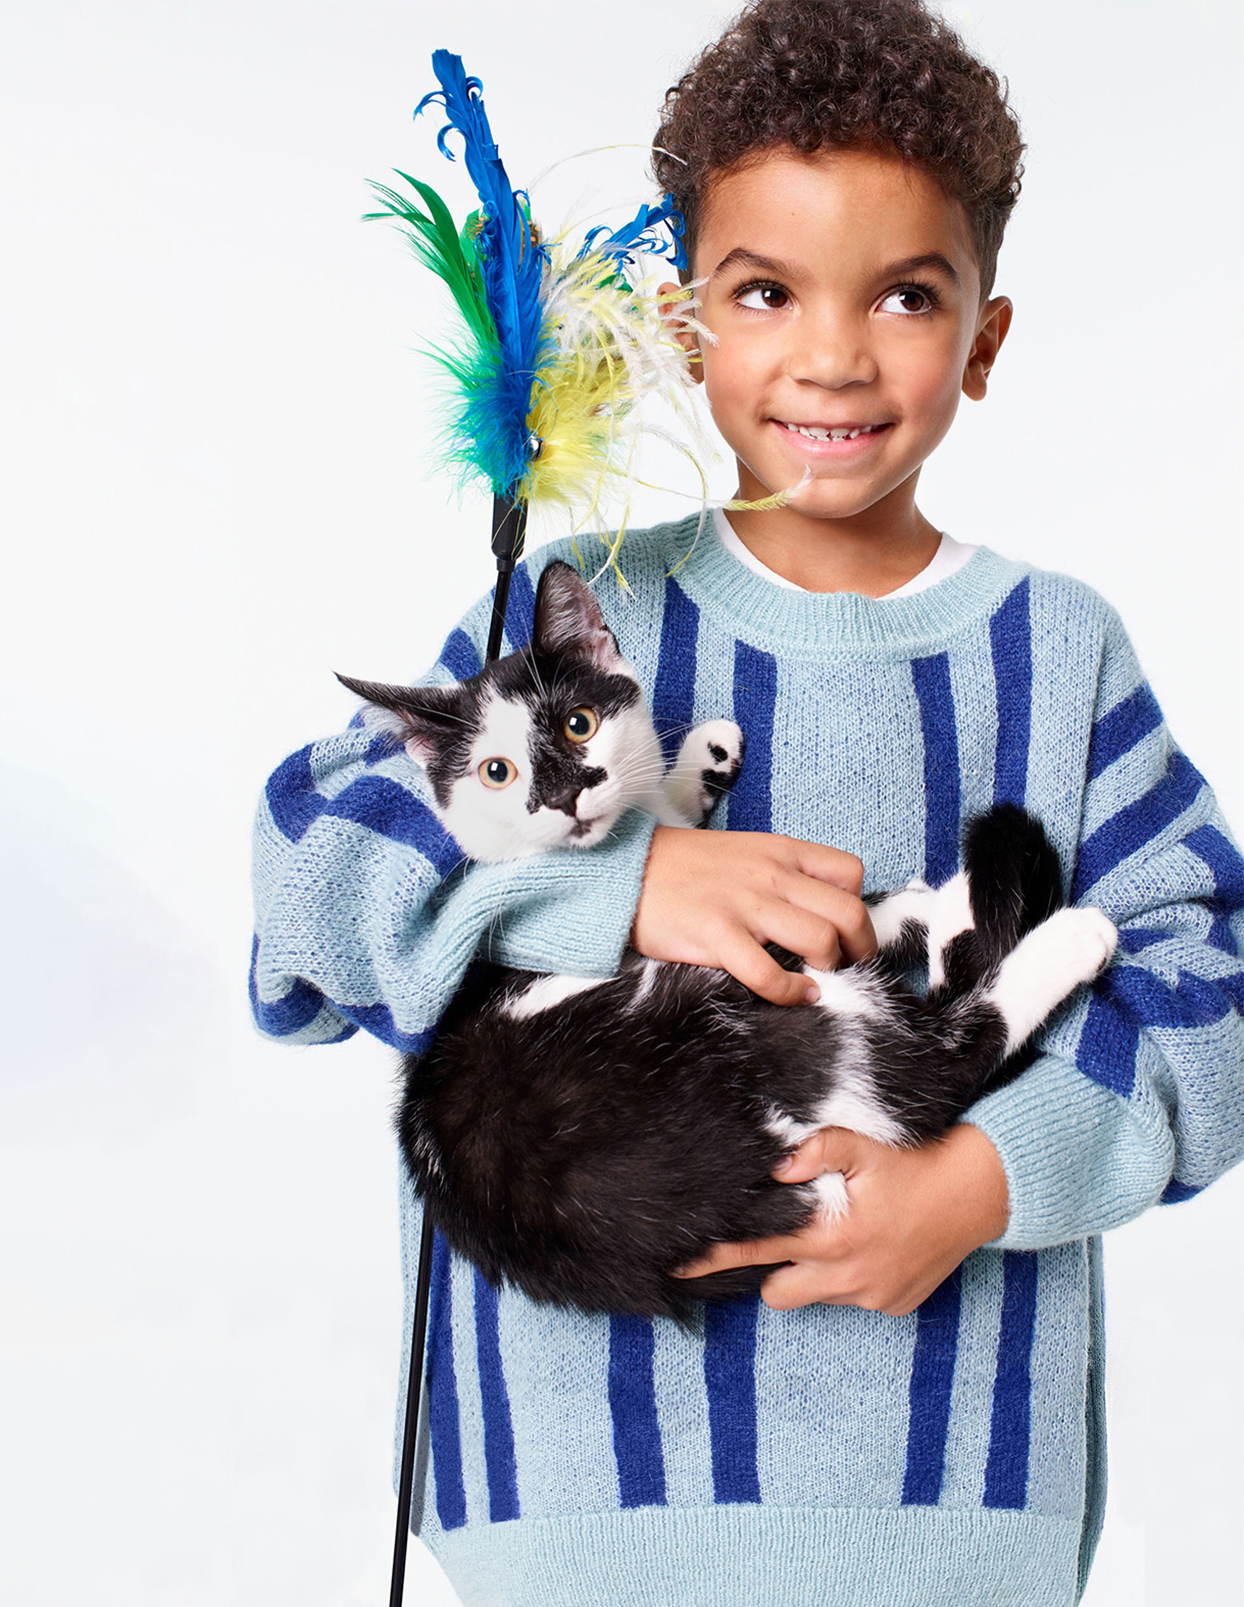 boy in striped sweater holding cat